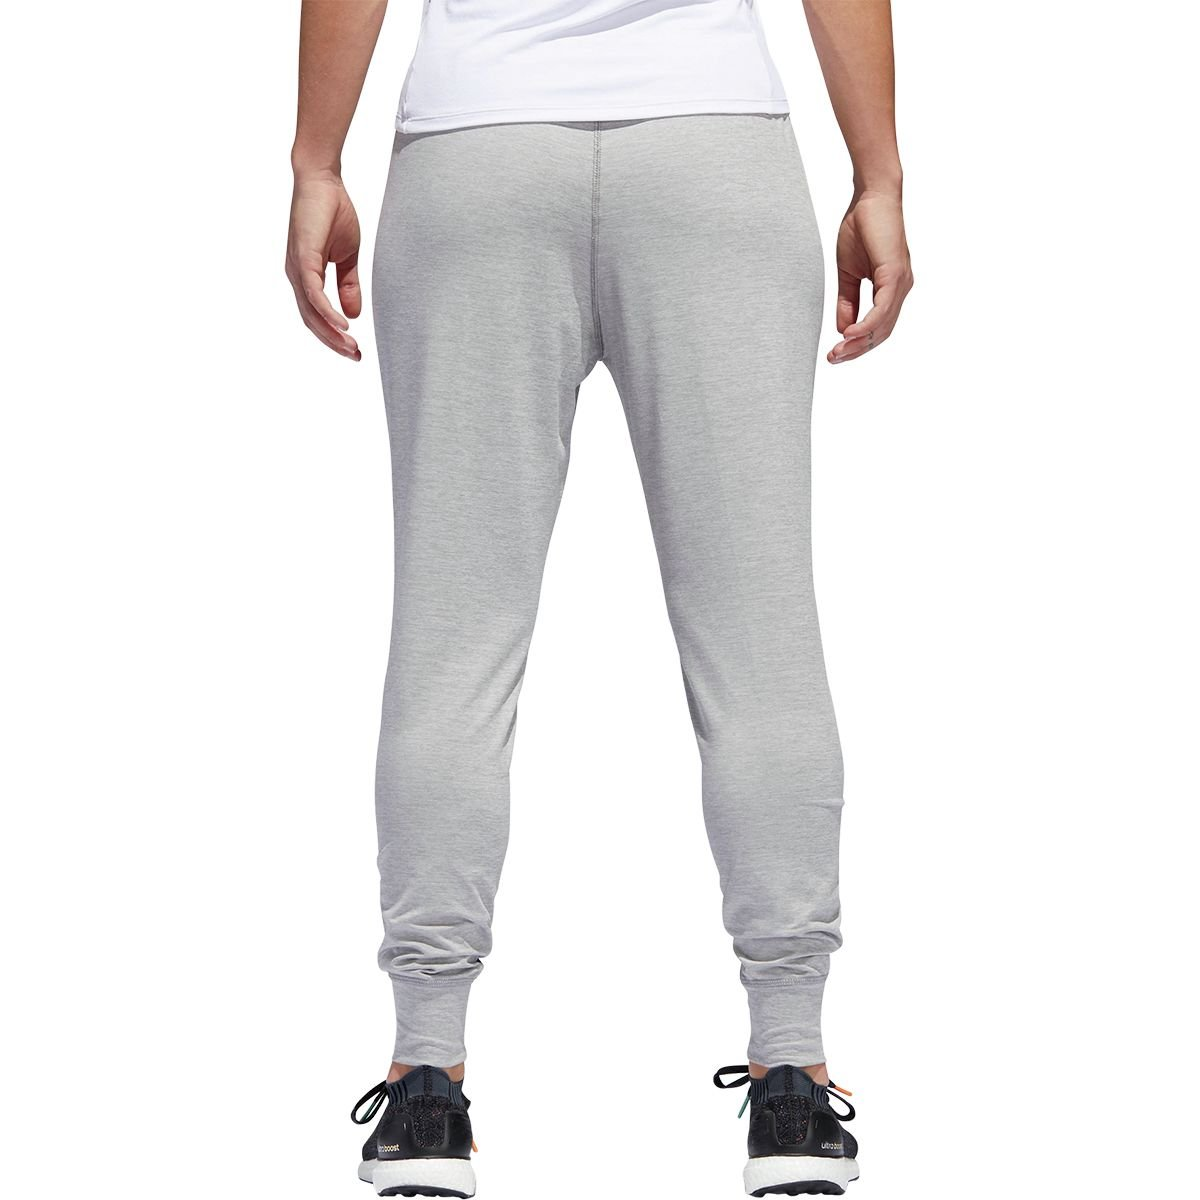 306e3f9e1db7 adidas Women s Sport ID Top Jogger Pants Medium Grey Heather Large at  Amazon Women s Clothing store